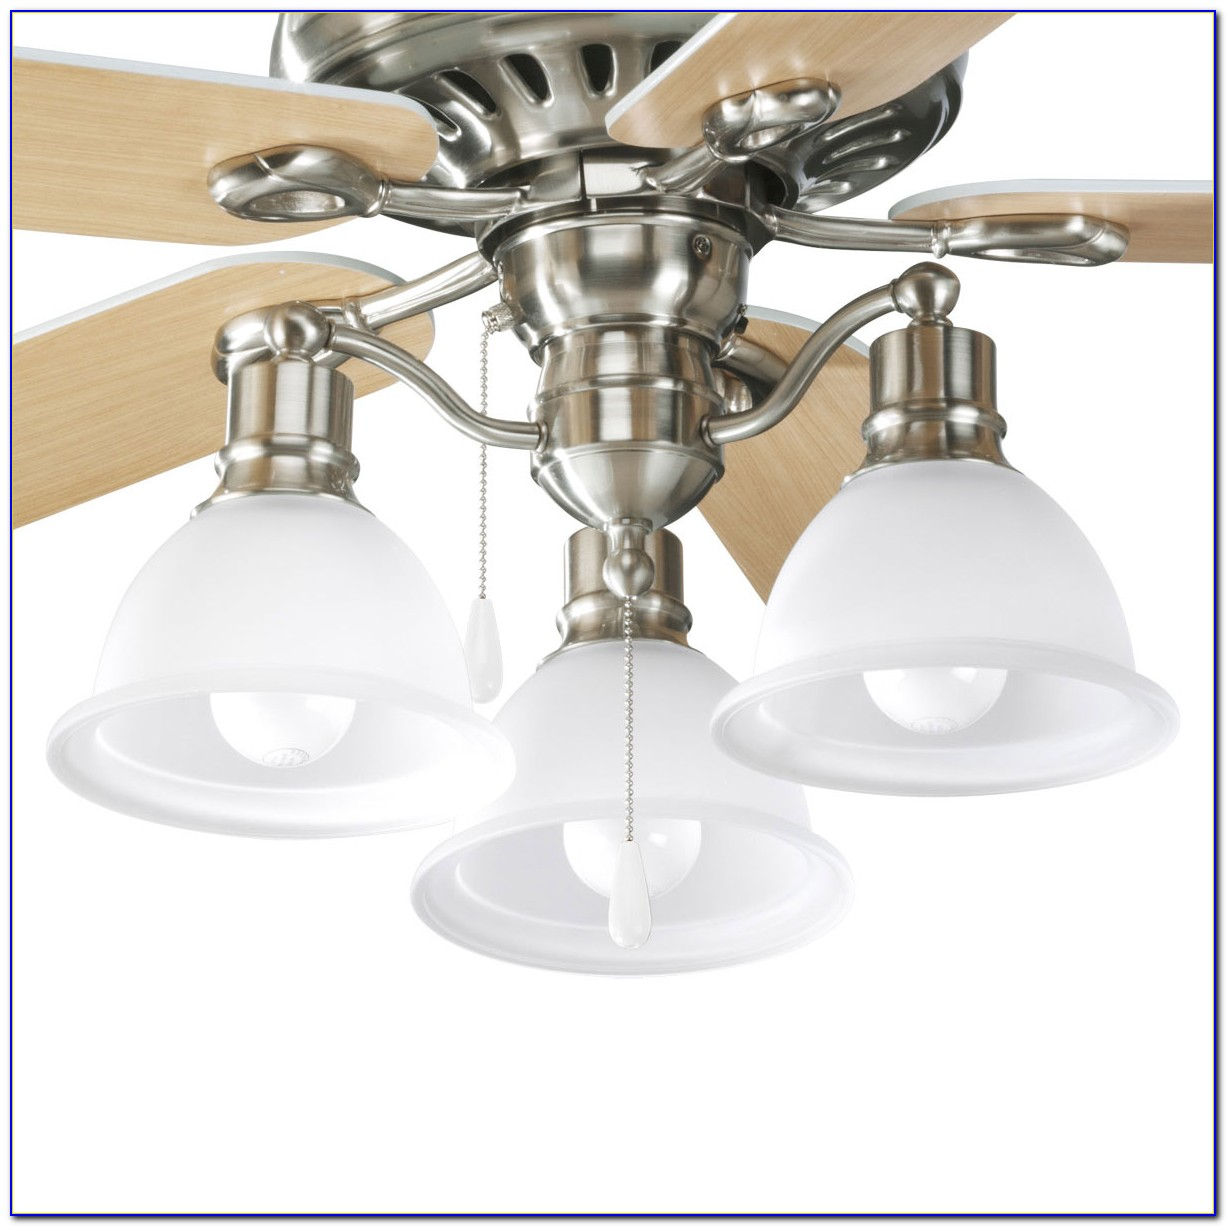 Lighting Kits For Hunter Ceiling Fans